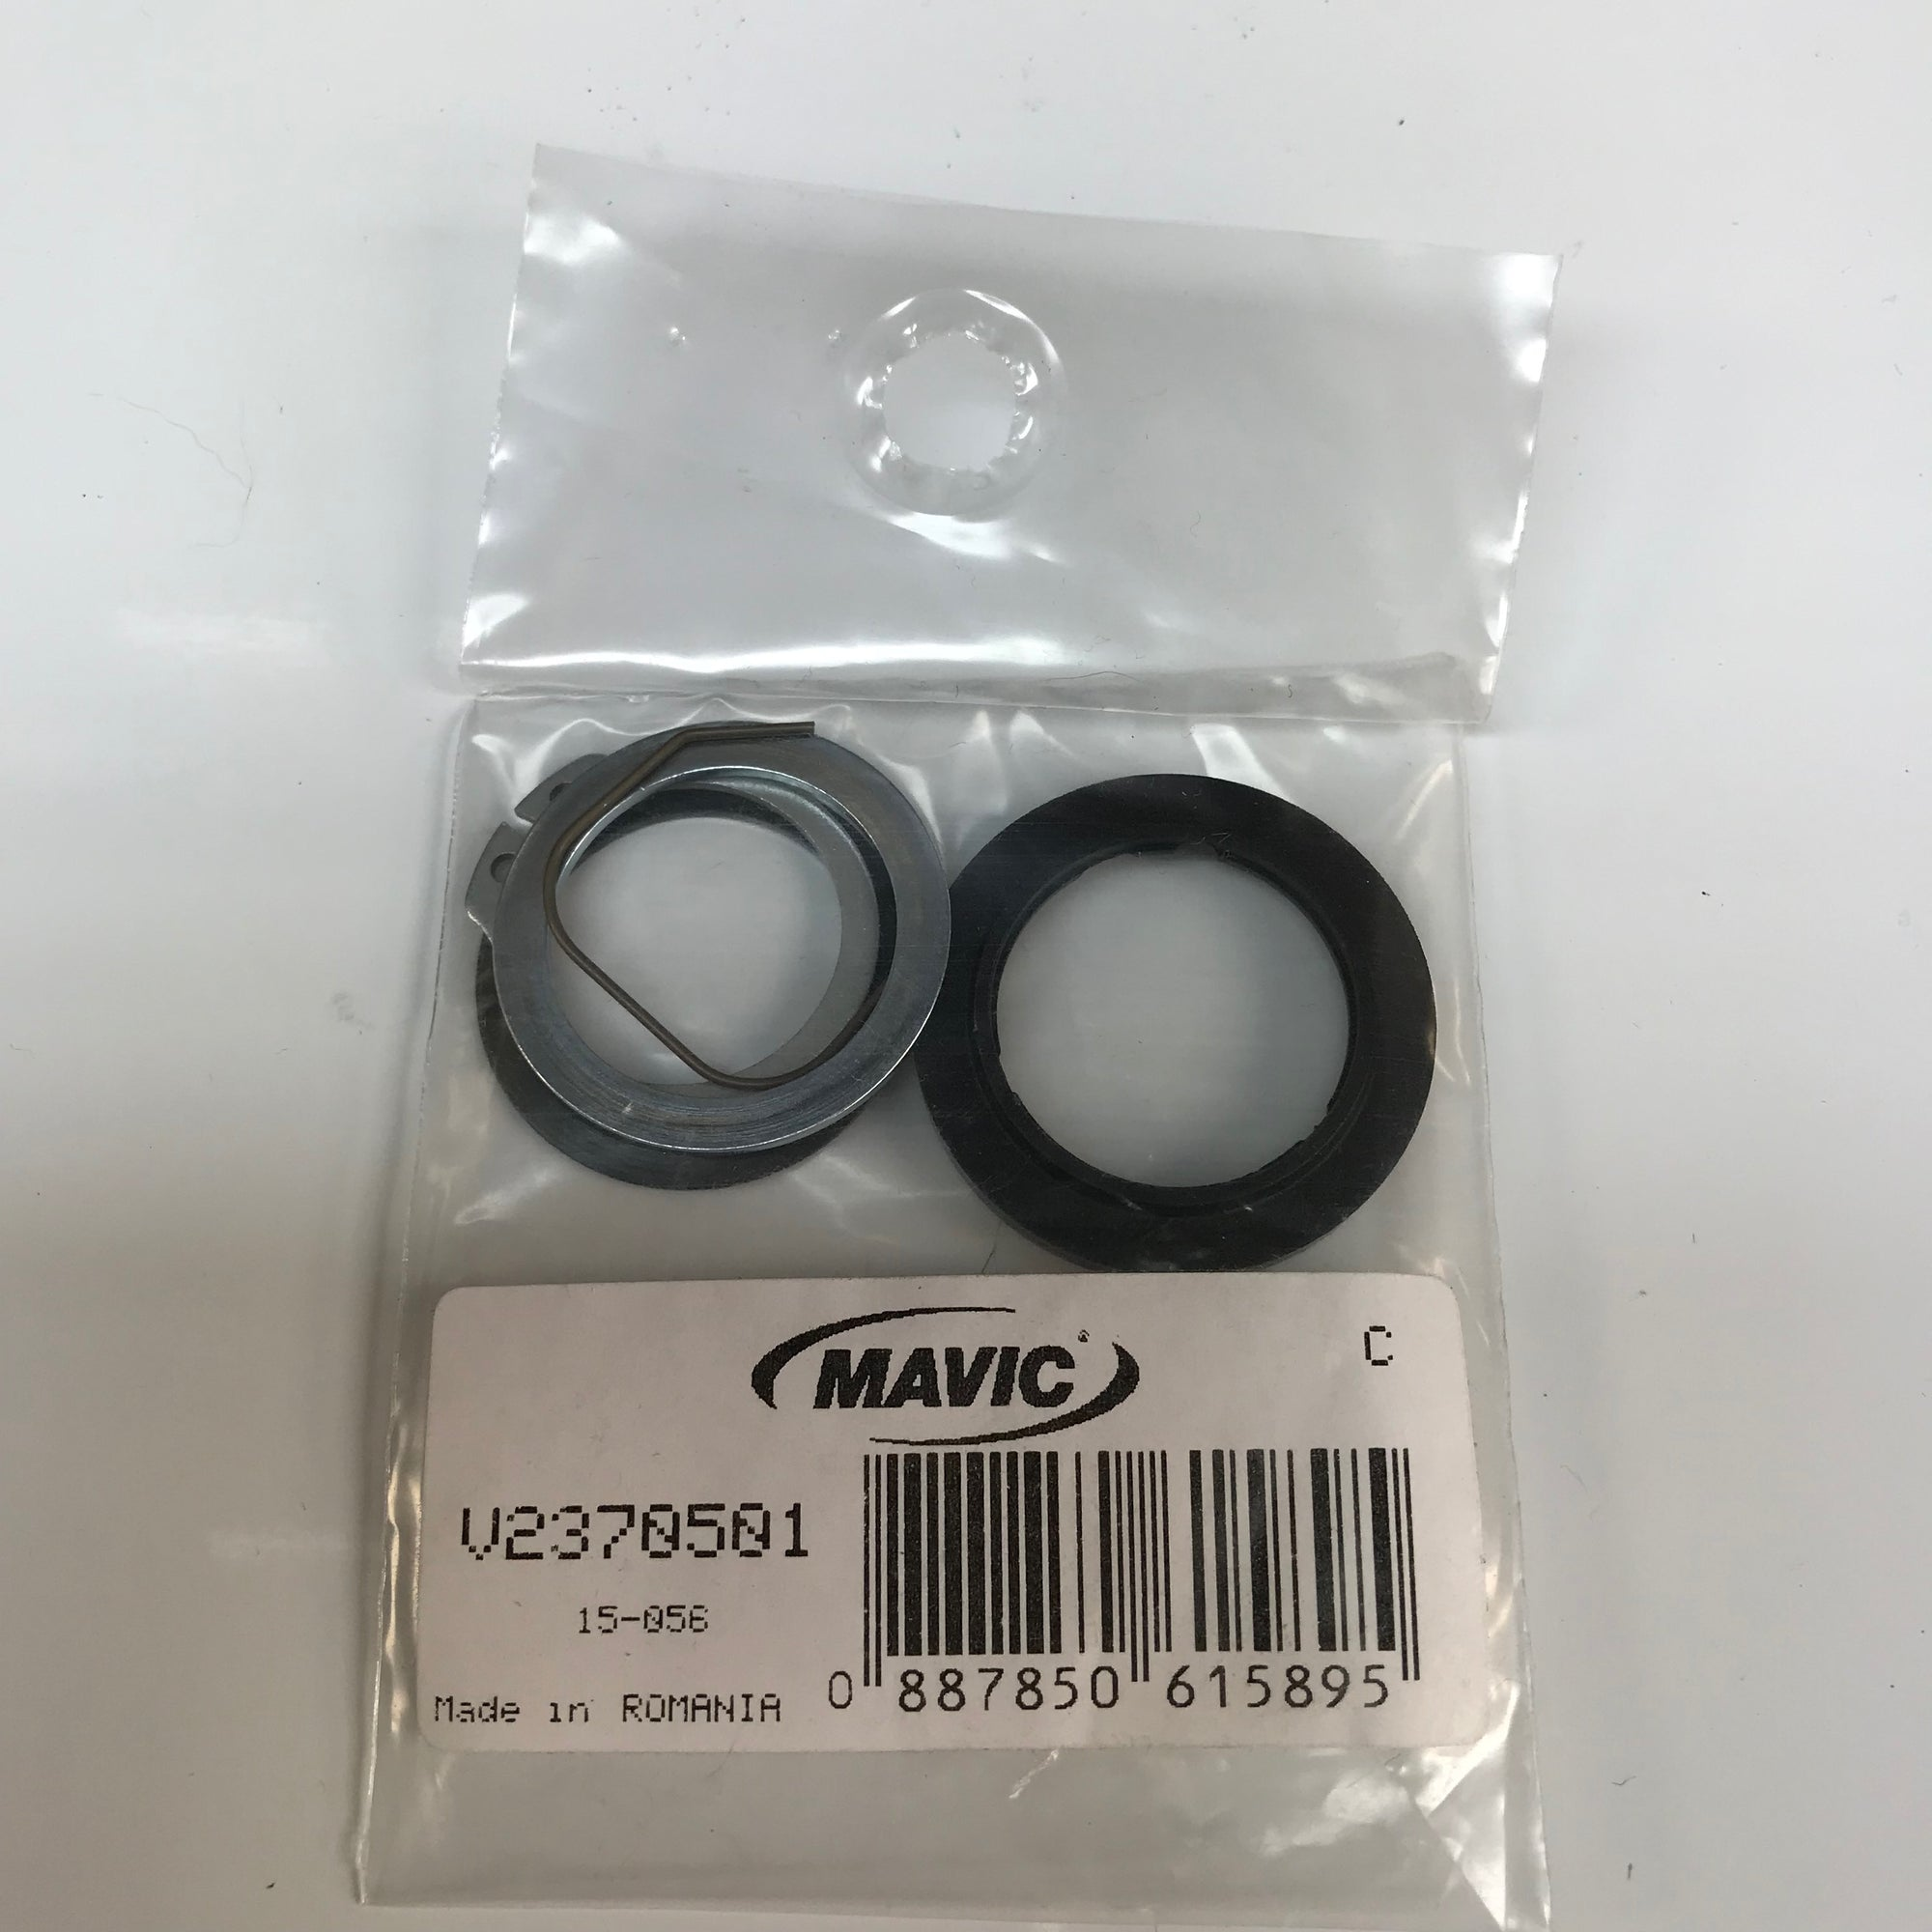 Mavic Auto Adjust Play Kit Front 20mm - V2370501